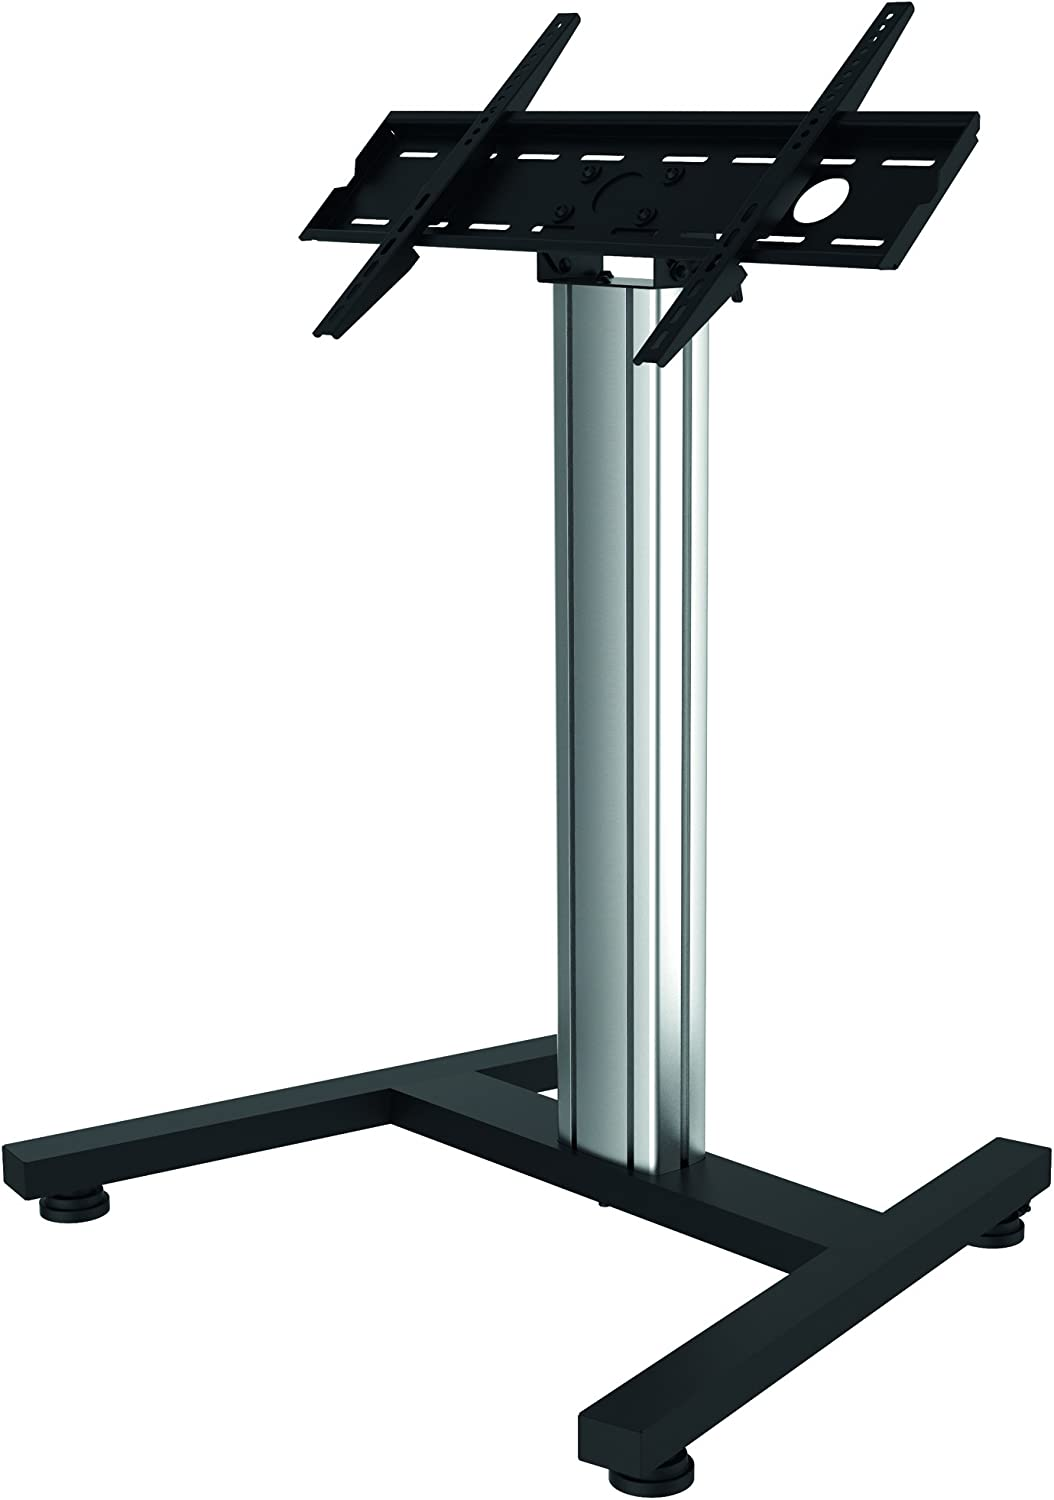 Puremounts Pds 1101s Trolley Floor Stand For Lcd Led Amazon Co Uk Electronics